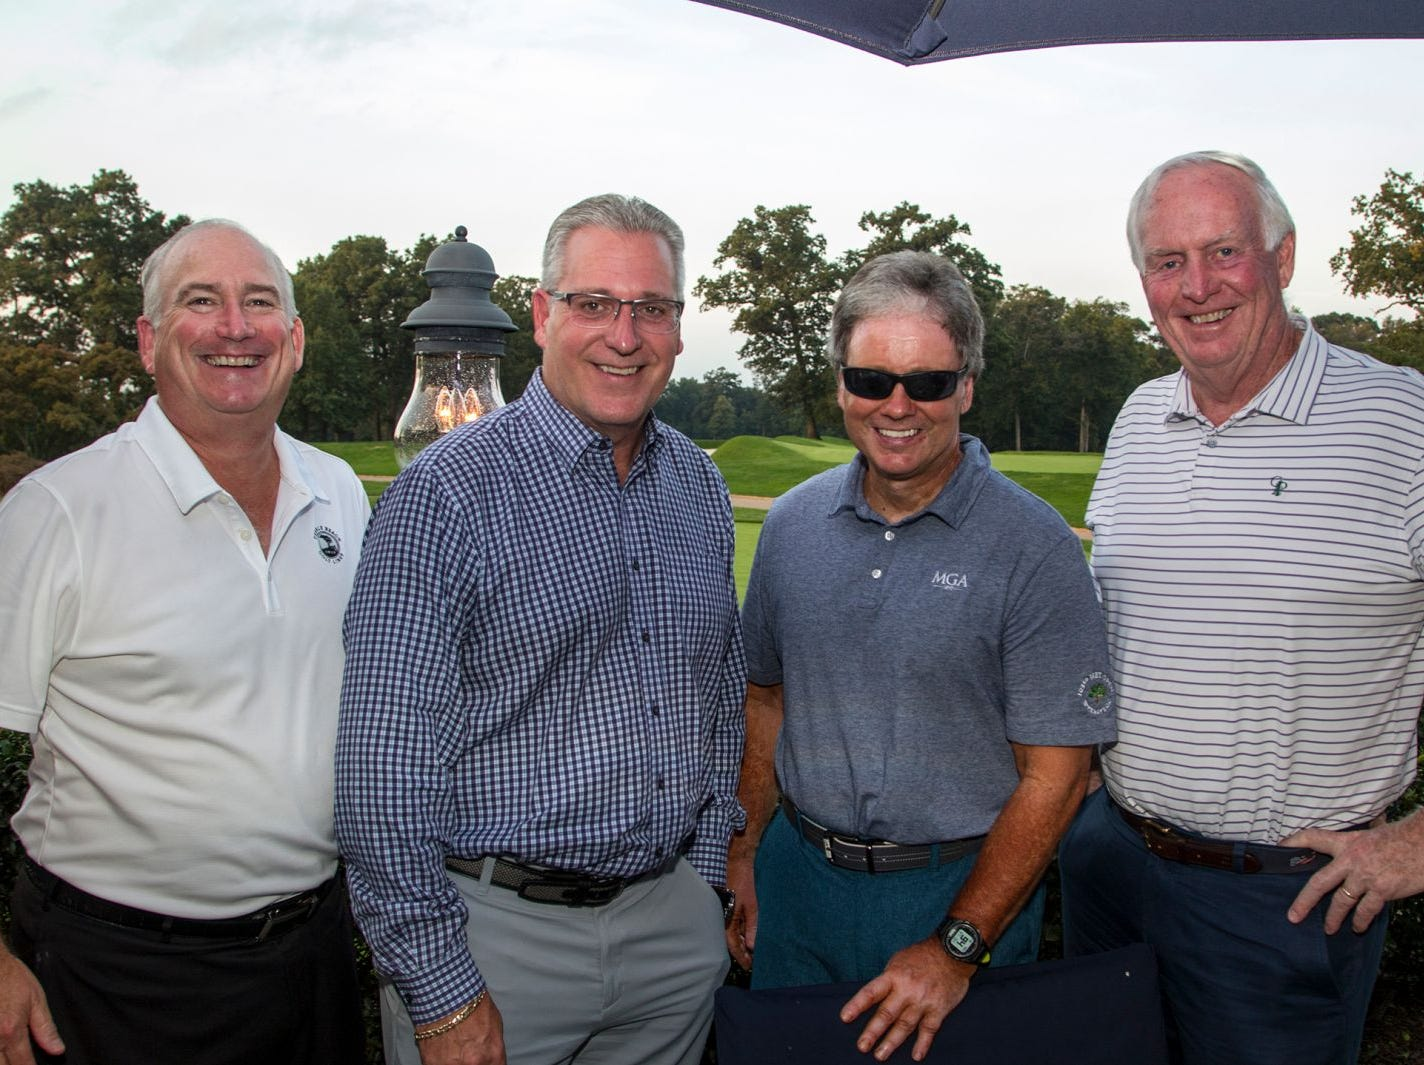 John Trobiano, Tim Tracy, Doug Vicari, Mike Vigs. Institute for Educational Achievement held its 23rd annual Golf Classic at Hackensack Golf Club in Oradell. 10/01/2018